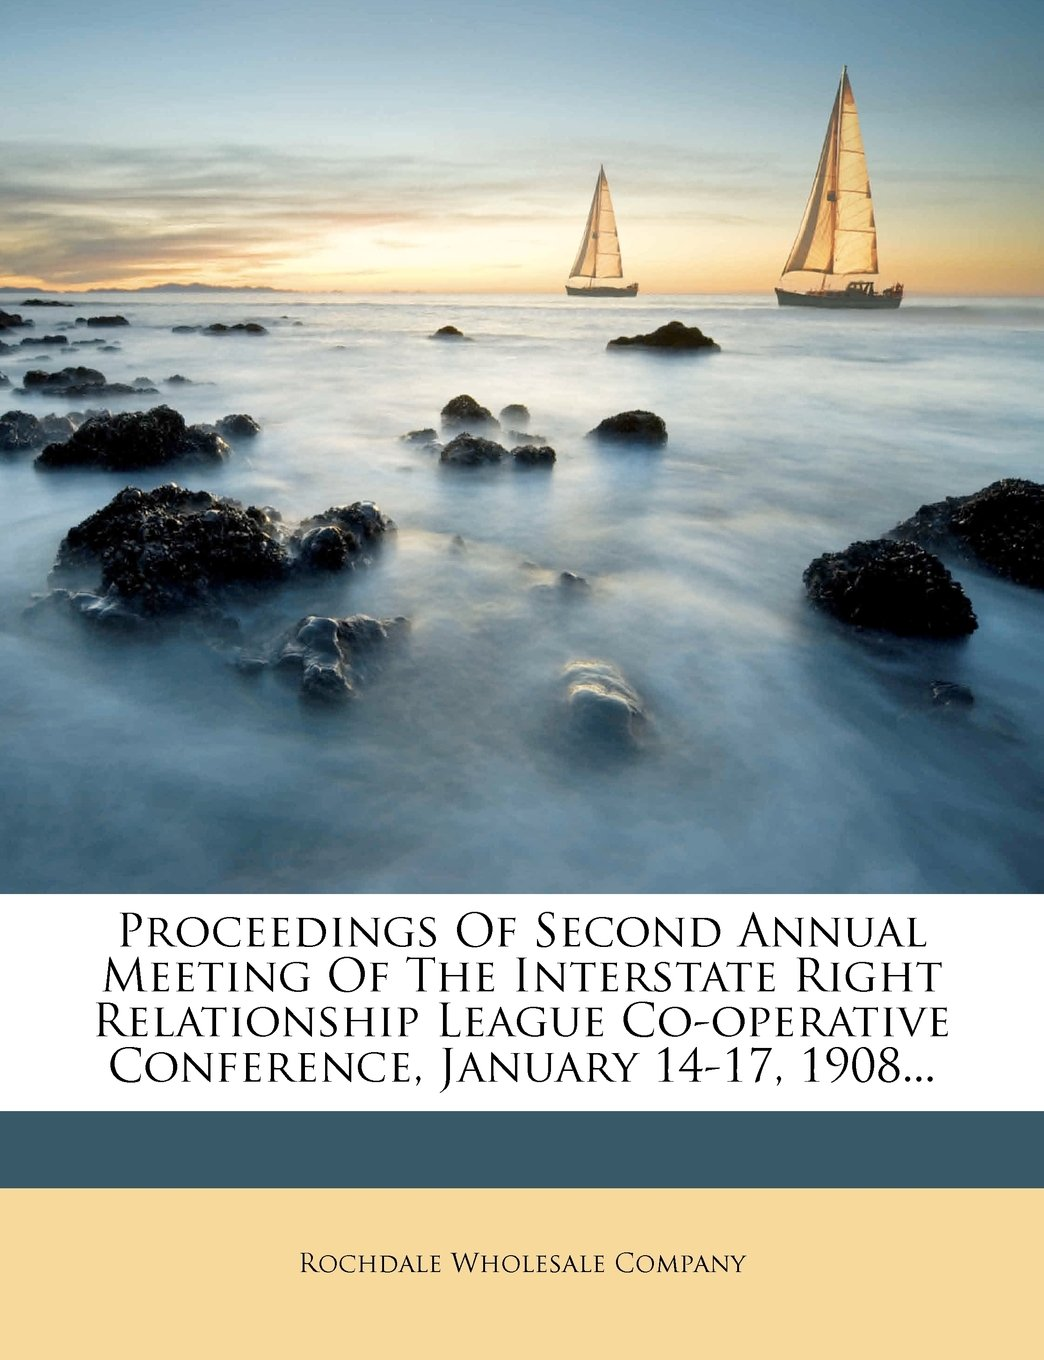 Proceedings Of Second Annual Meeting Of The Interstate Right Relationship League Co-operative Conference, January 14-17, 1908... PDF